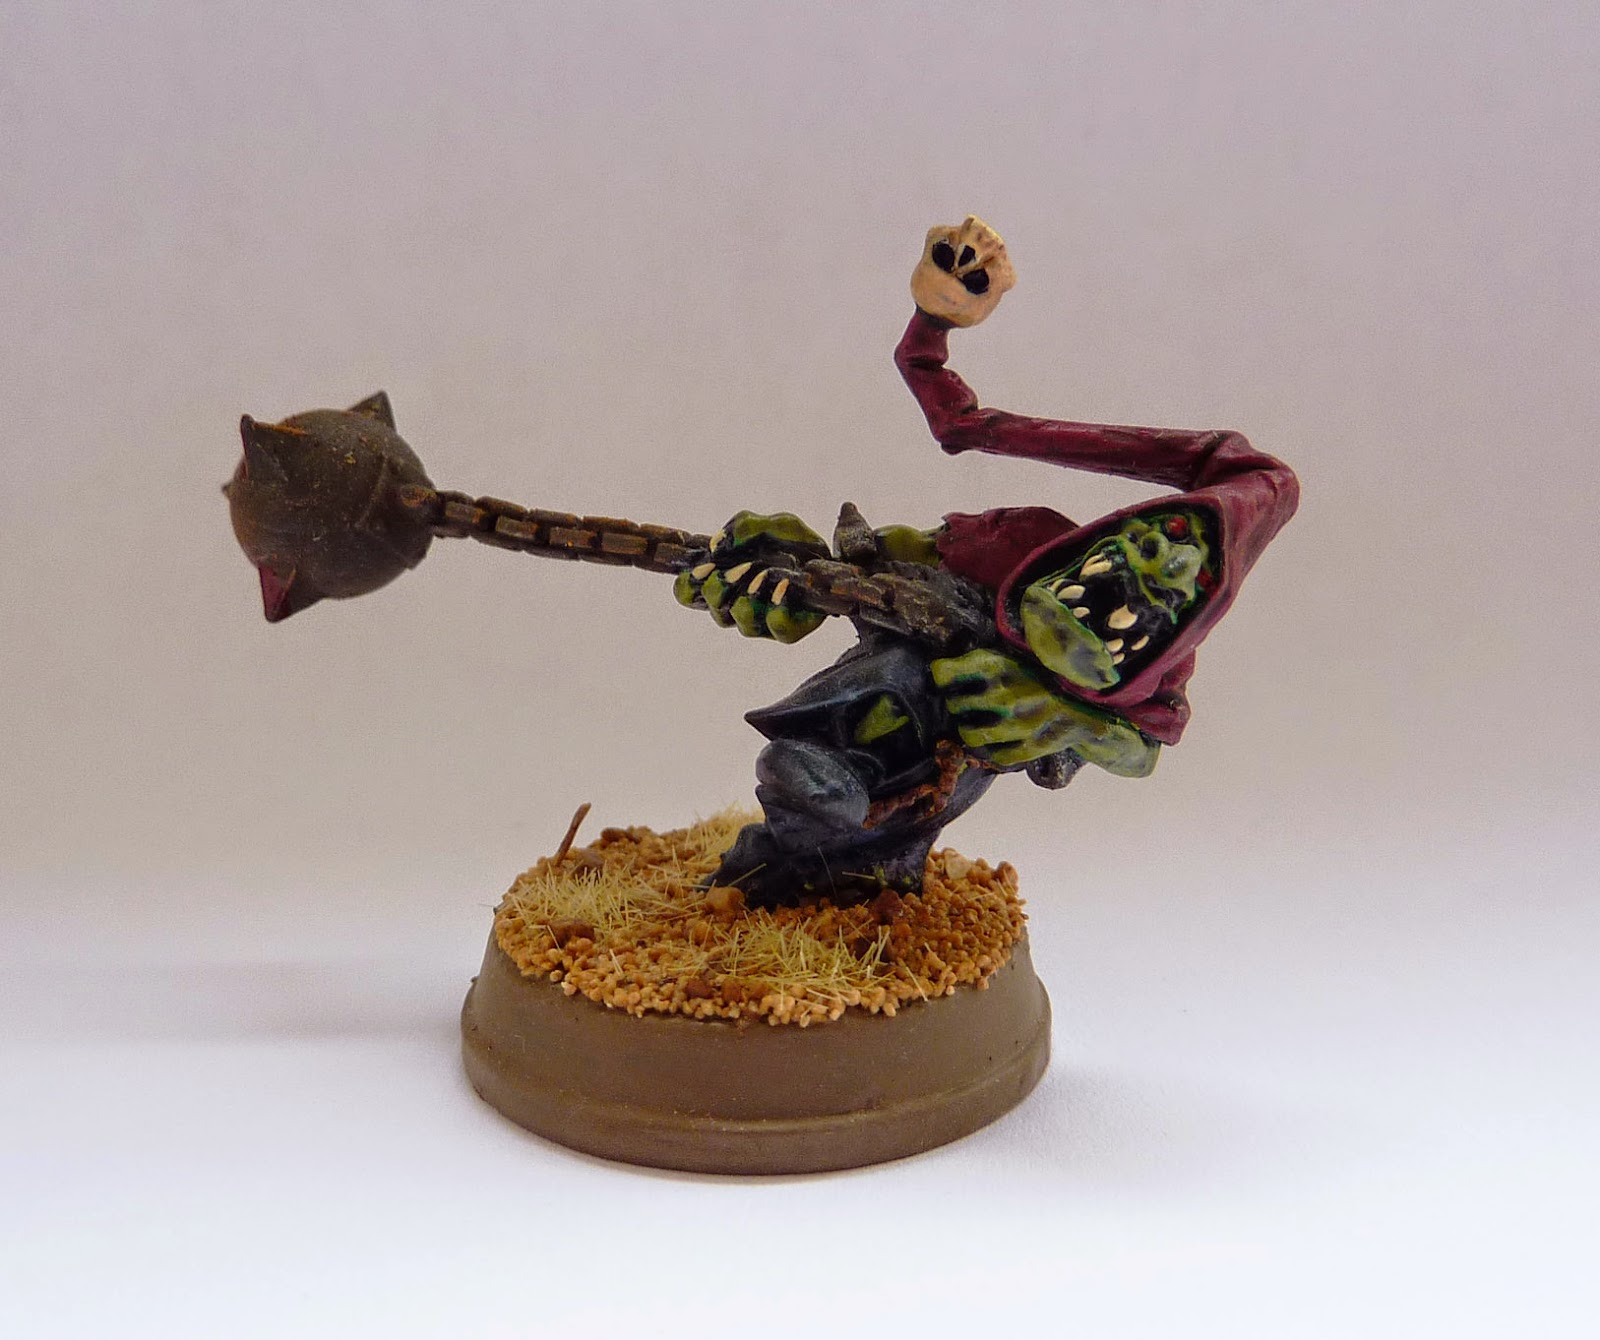 Night Goblin fanatic from Warhammer Fantasy Battle.